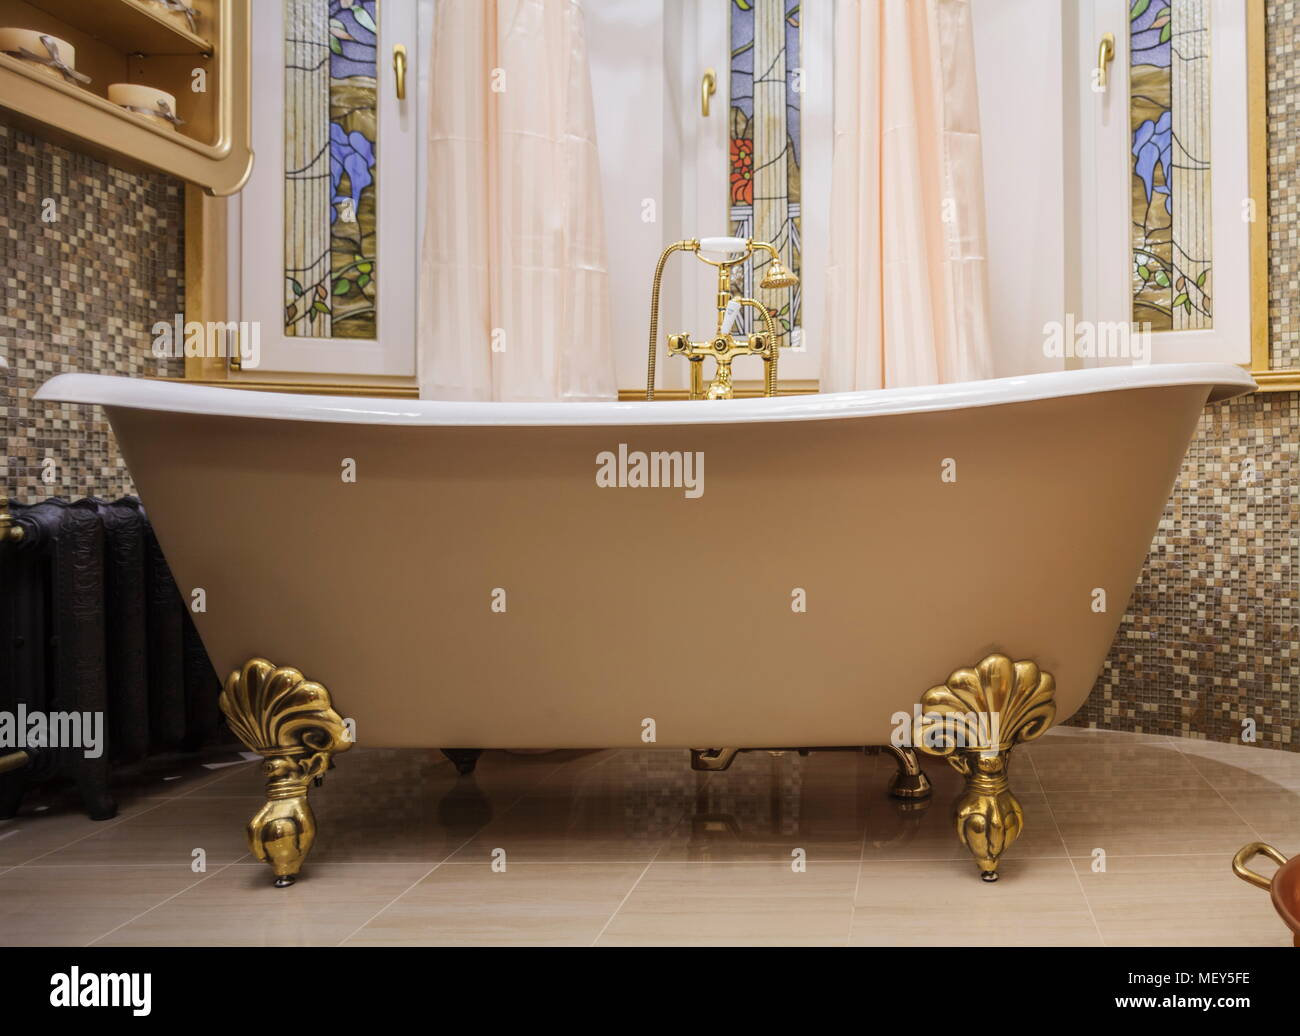 bathroom with old-fashioned bathtub Stock Photo: 181305922 - Alamy